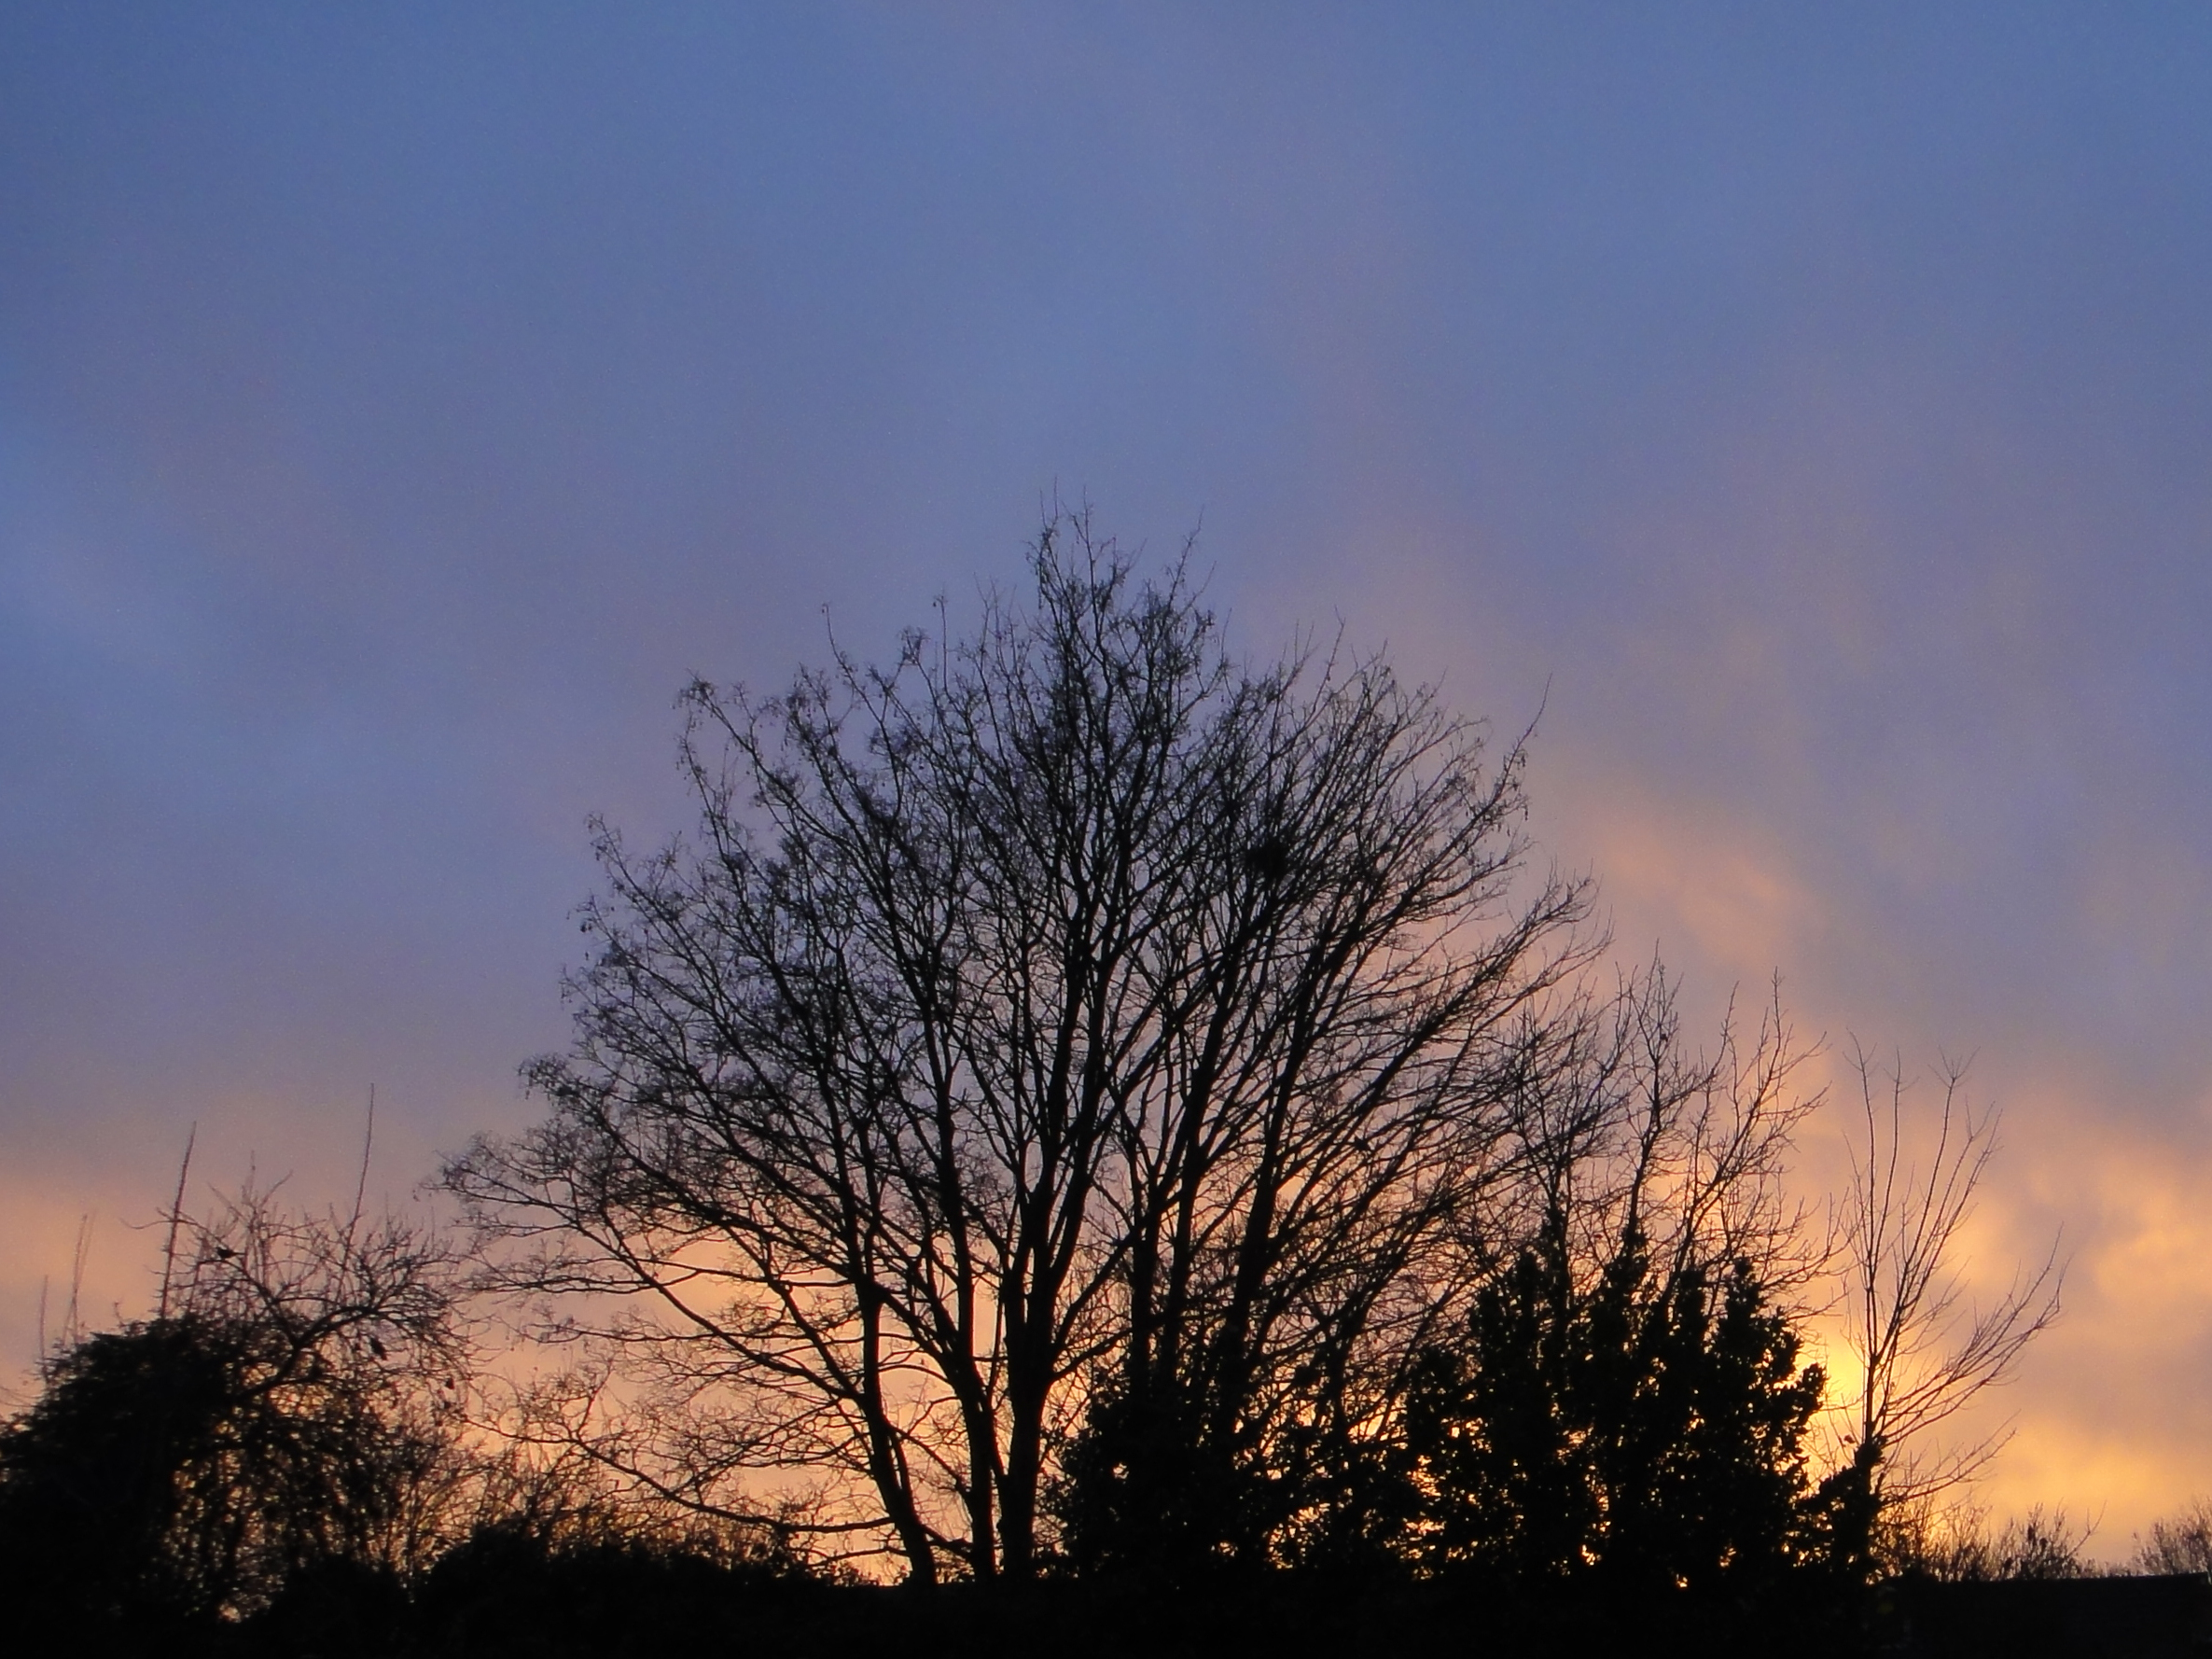 sunset with leafless trees, from back garden